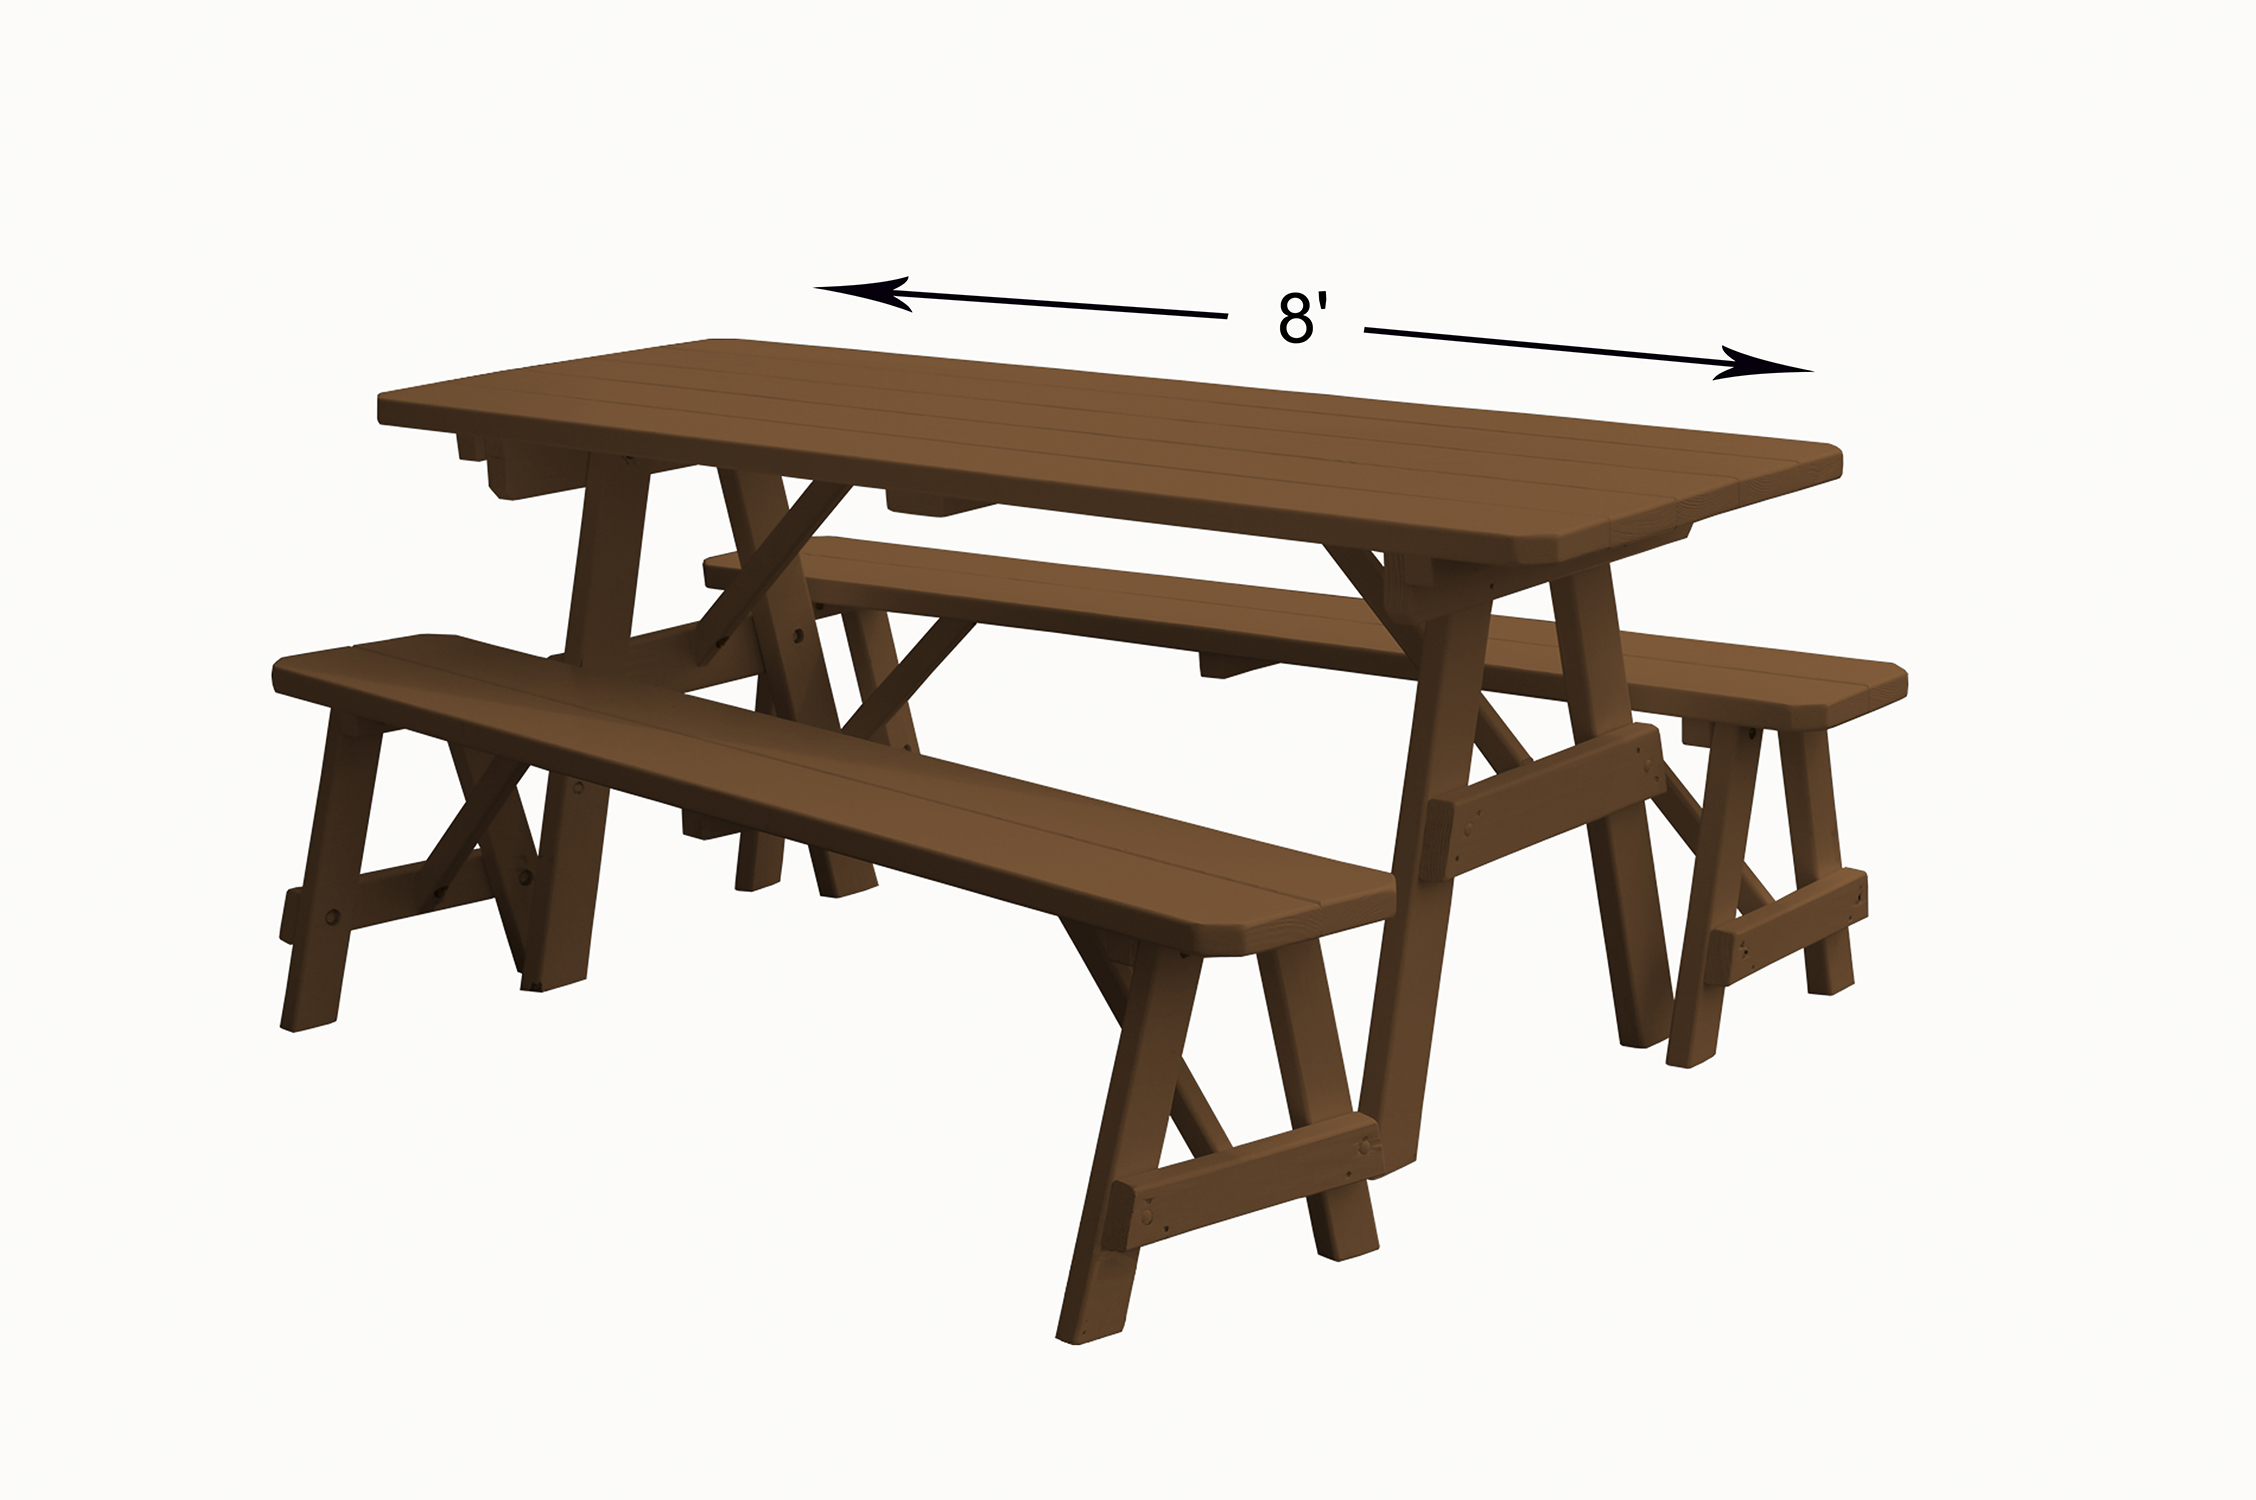 8 foot Traditional Wooden Picnic Table with 2 Wooden Benches by